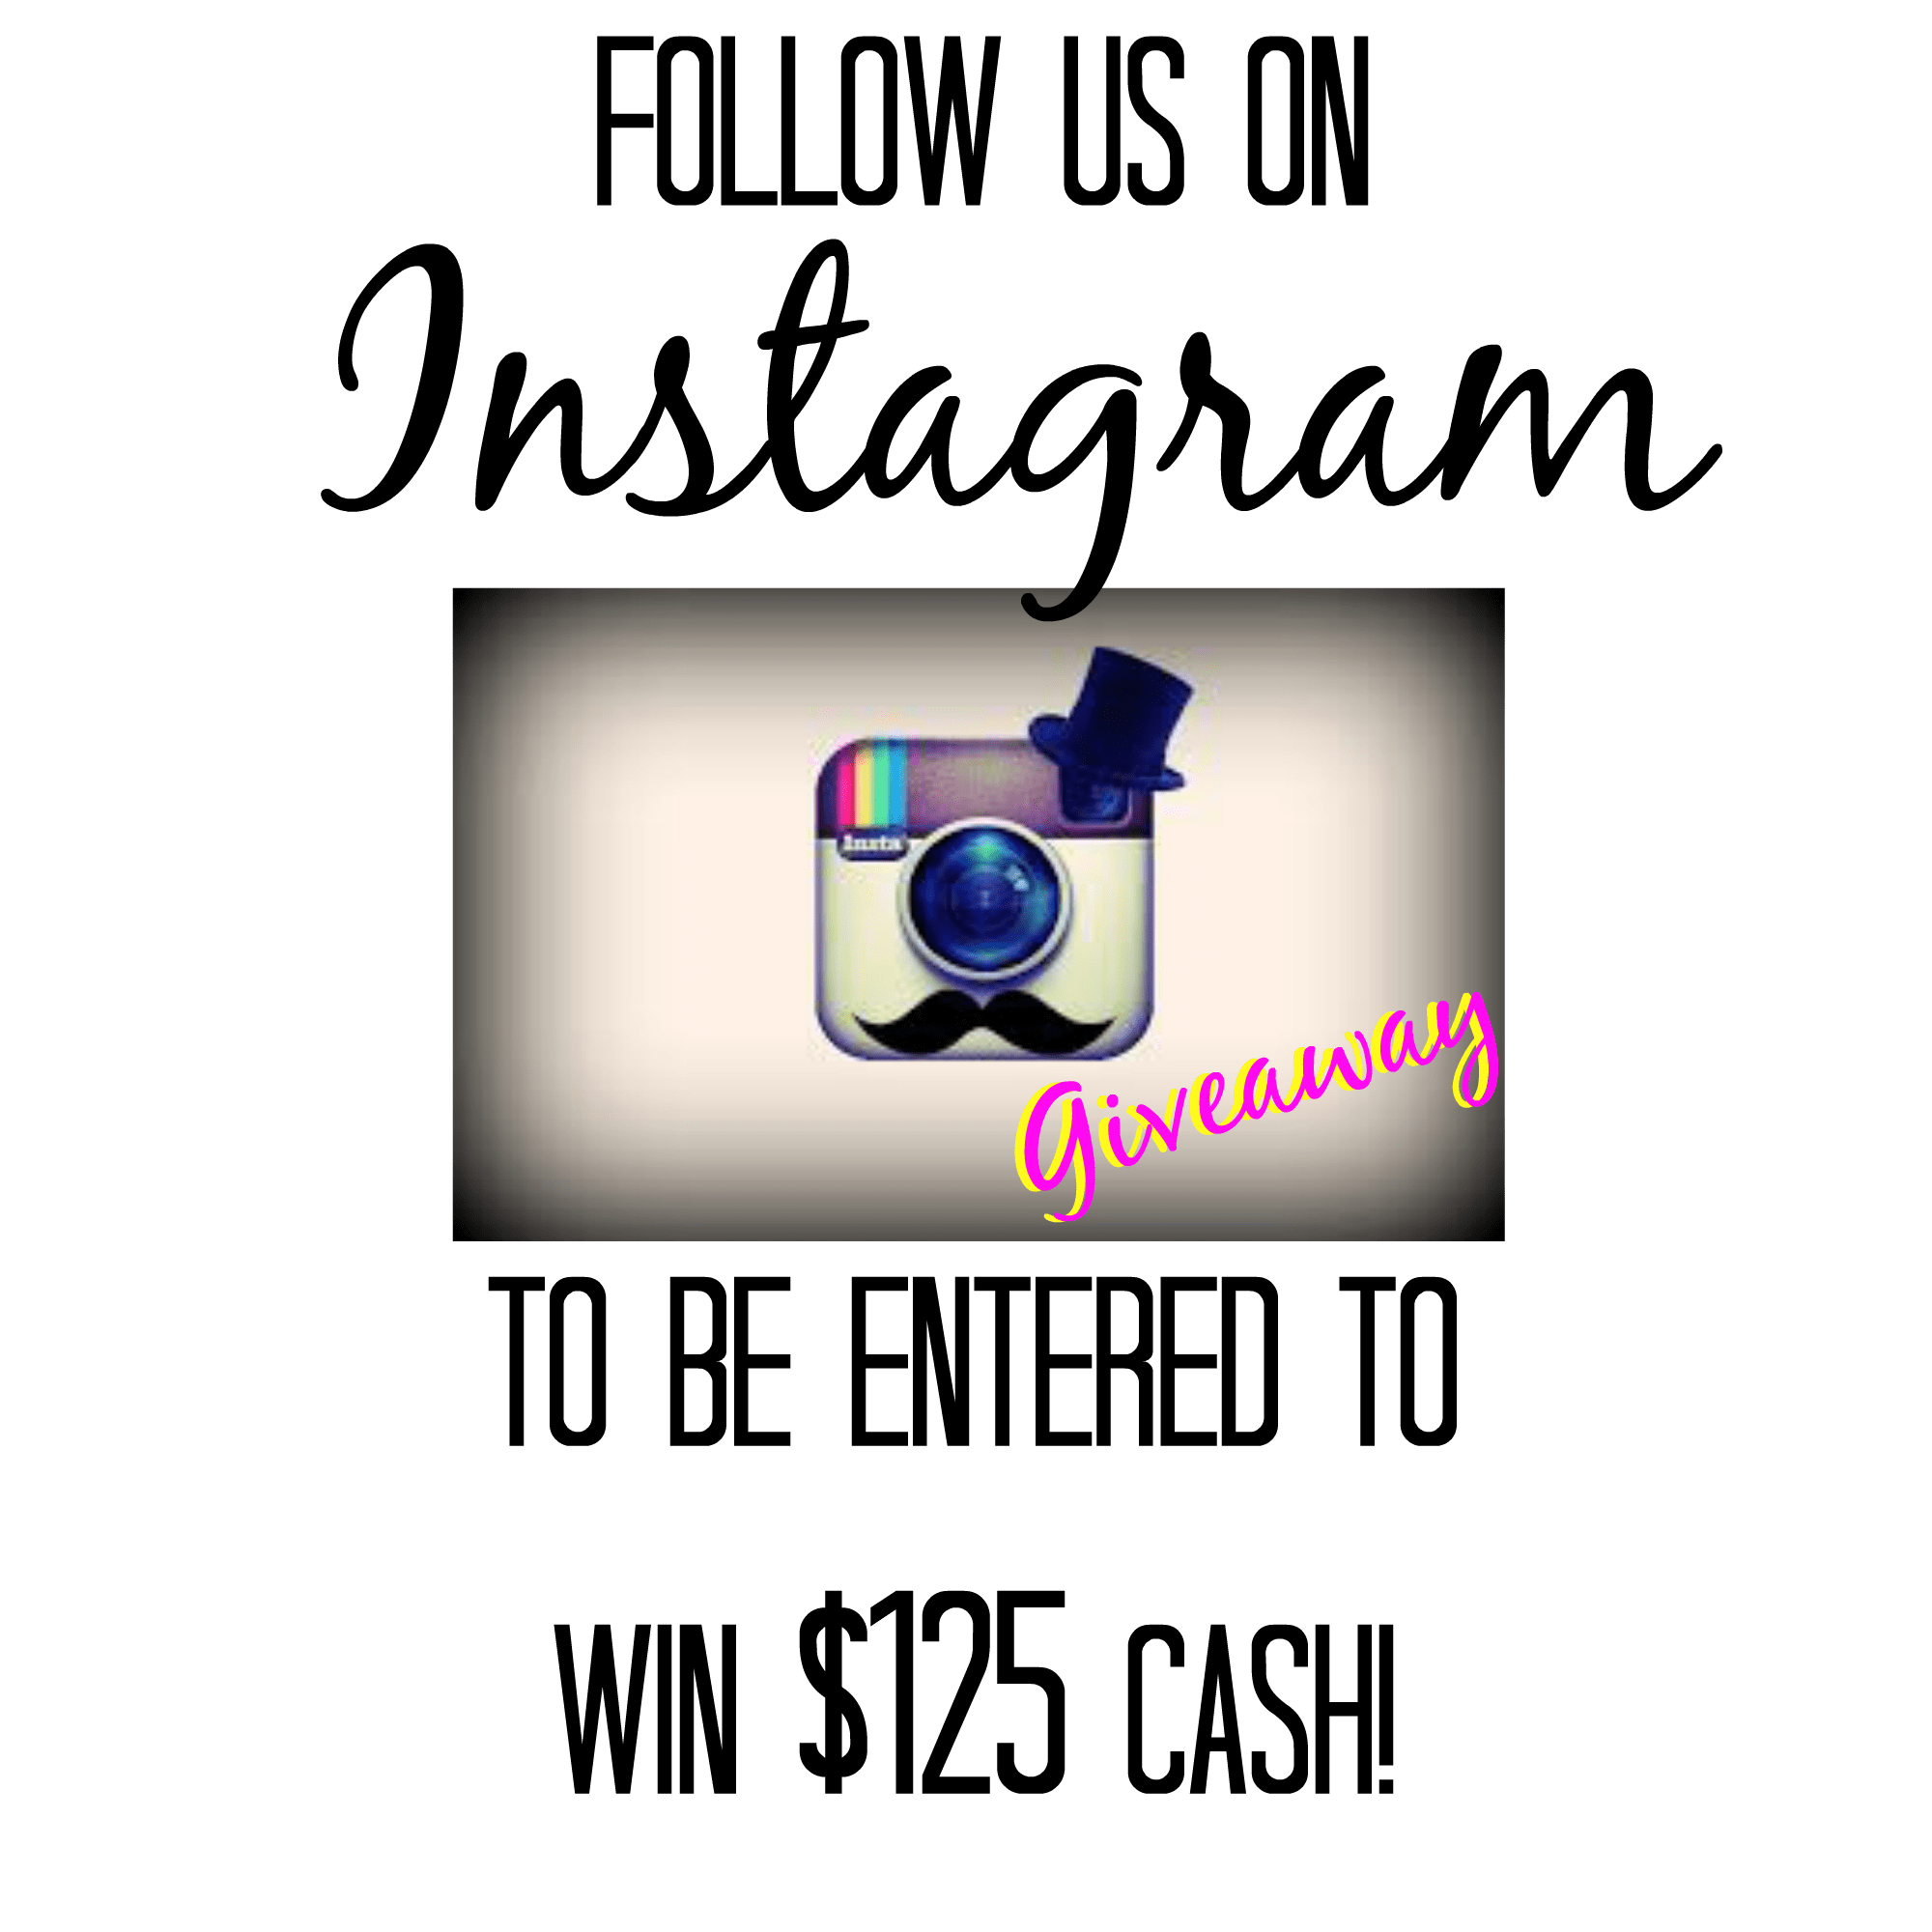 $125 Instagram Giveaway | ENTER TO WIN - A Dash of Sanity